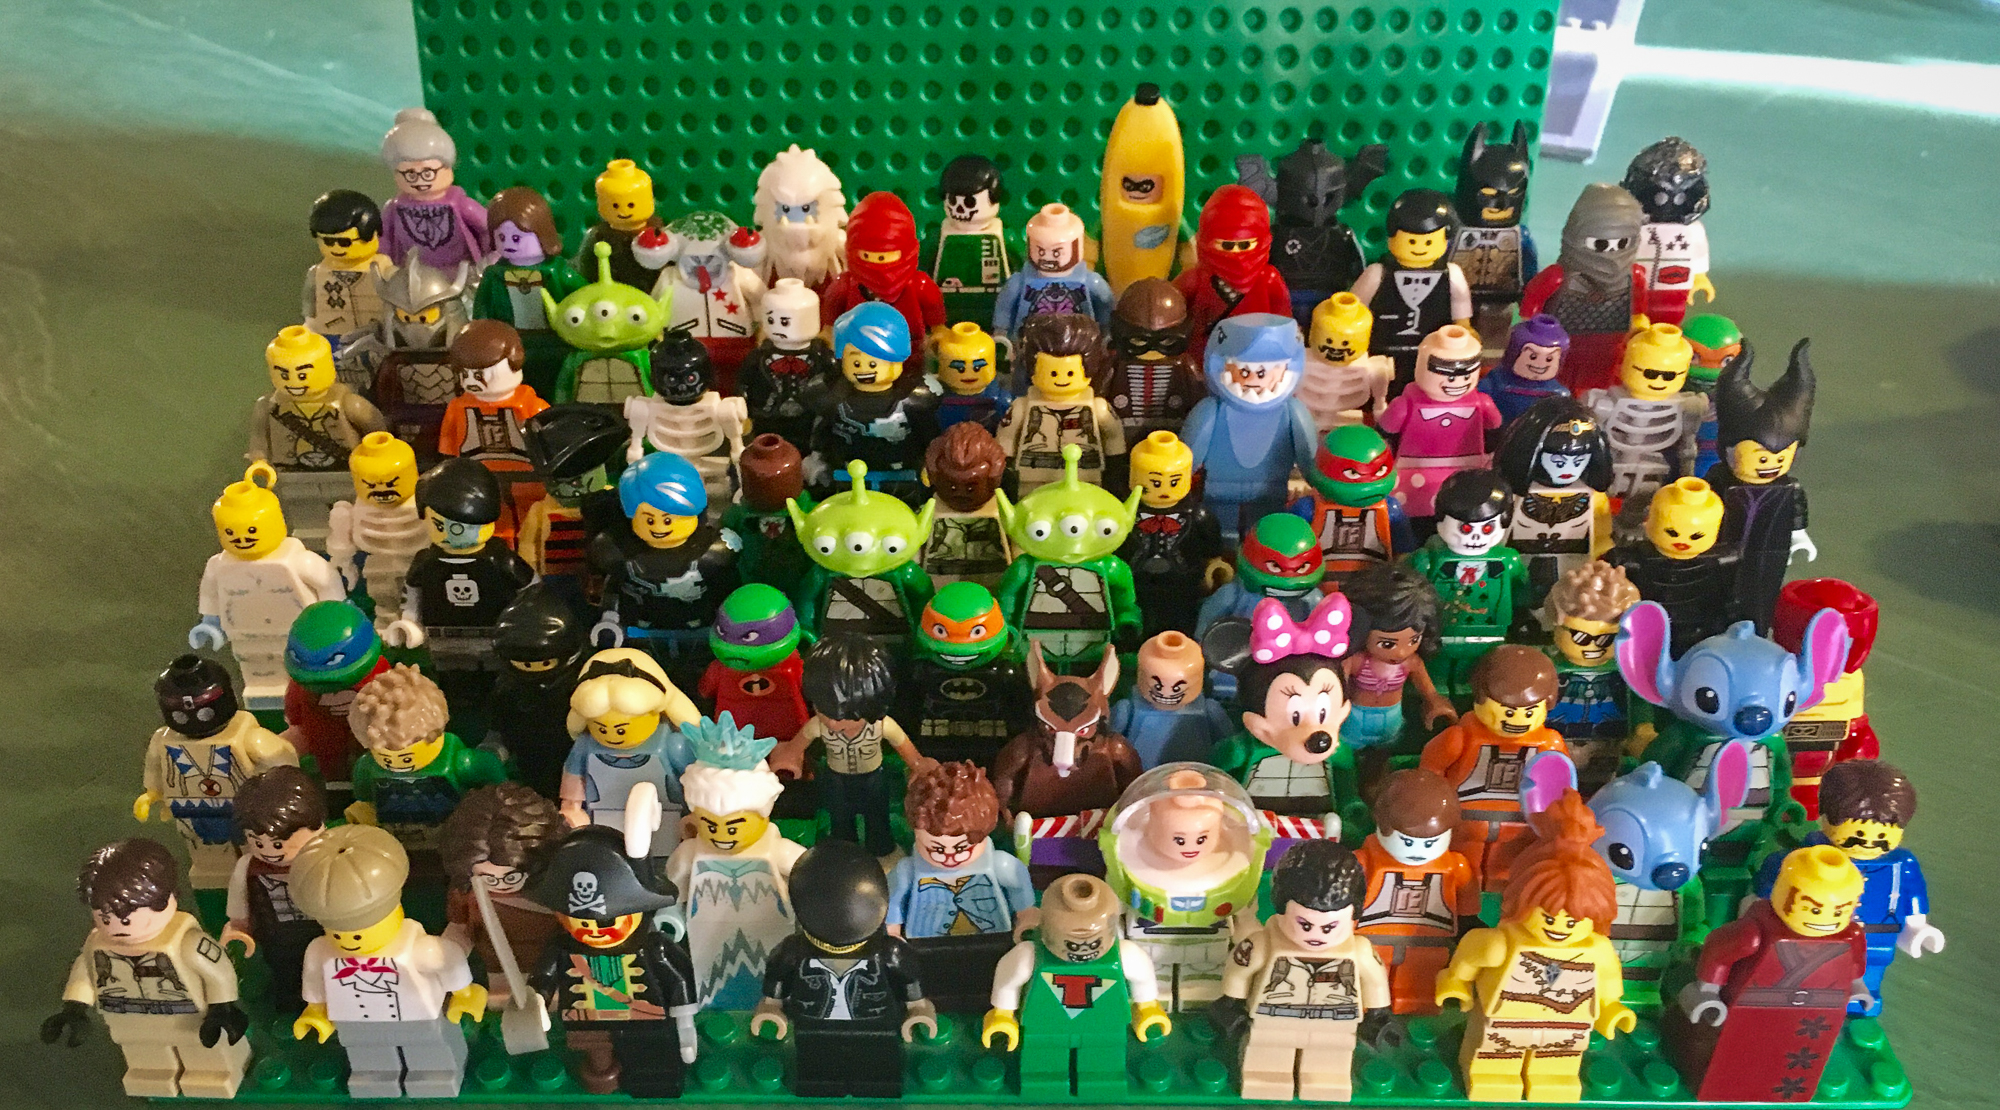 Help! My entire LEGO collection was stolen! – Ramblings From a Nobody